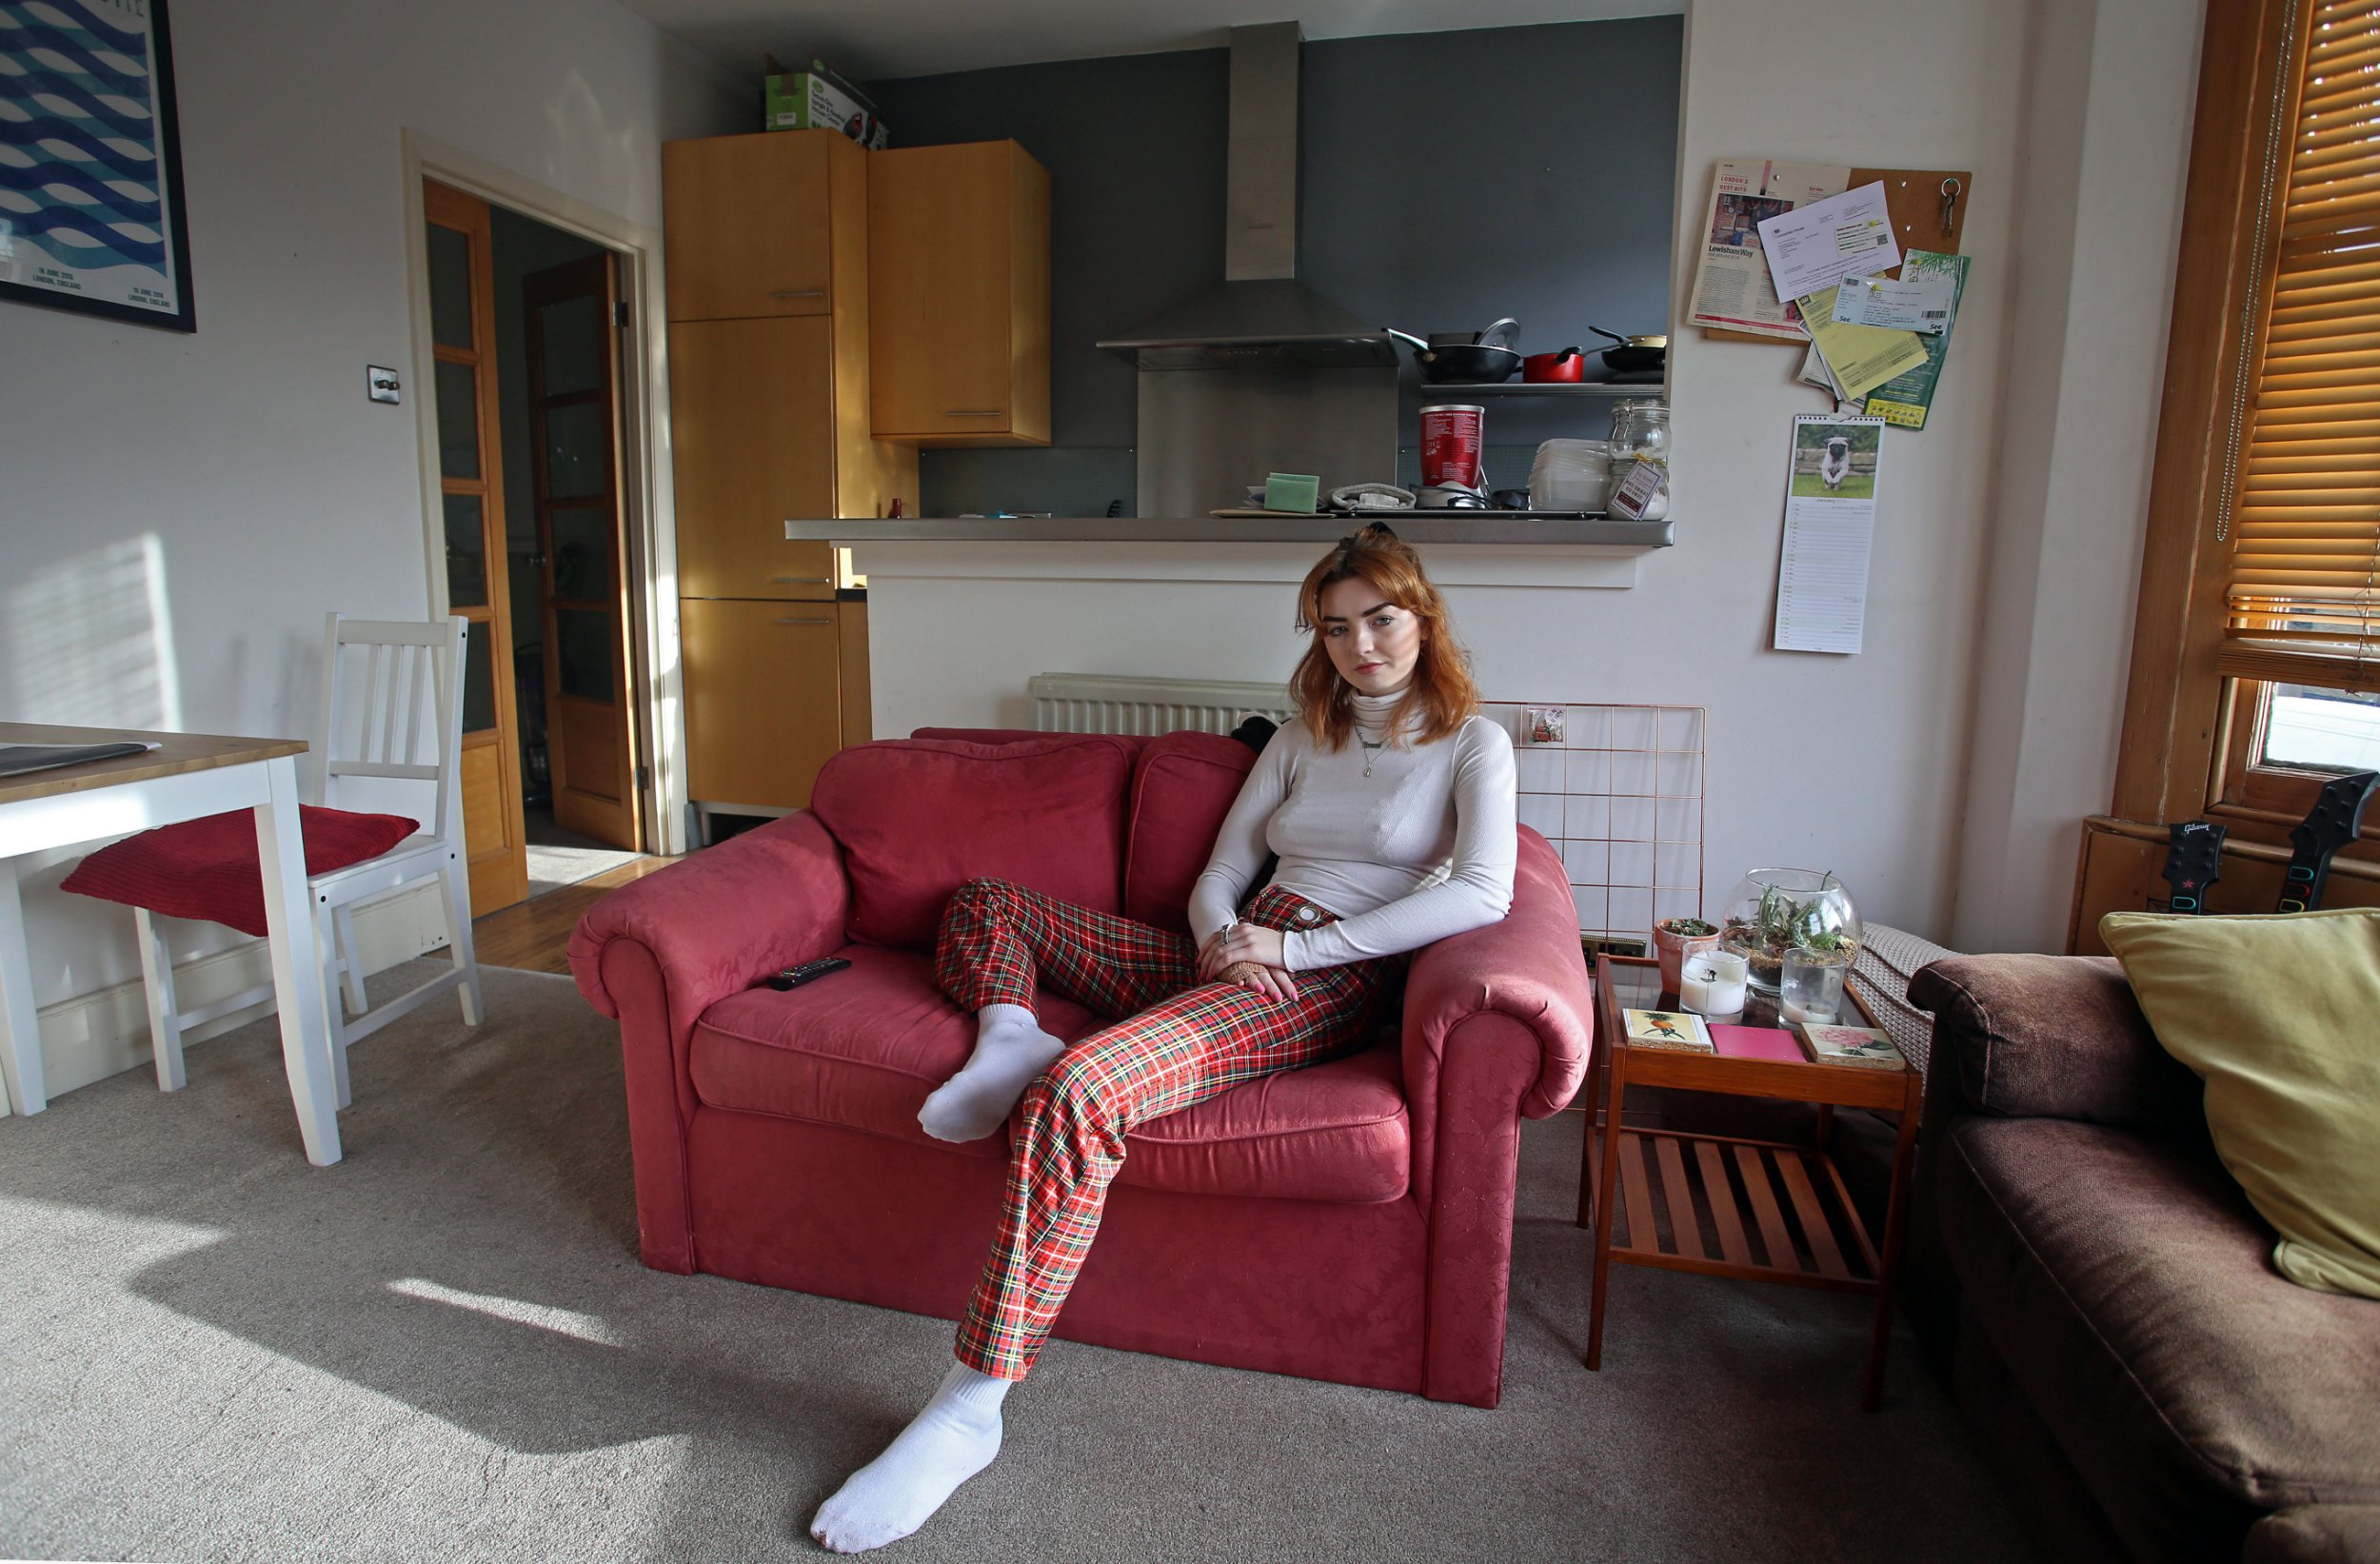 Hannah shares a three-bedroom flat in Brockley with two people she met online